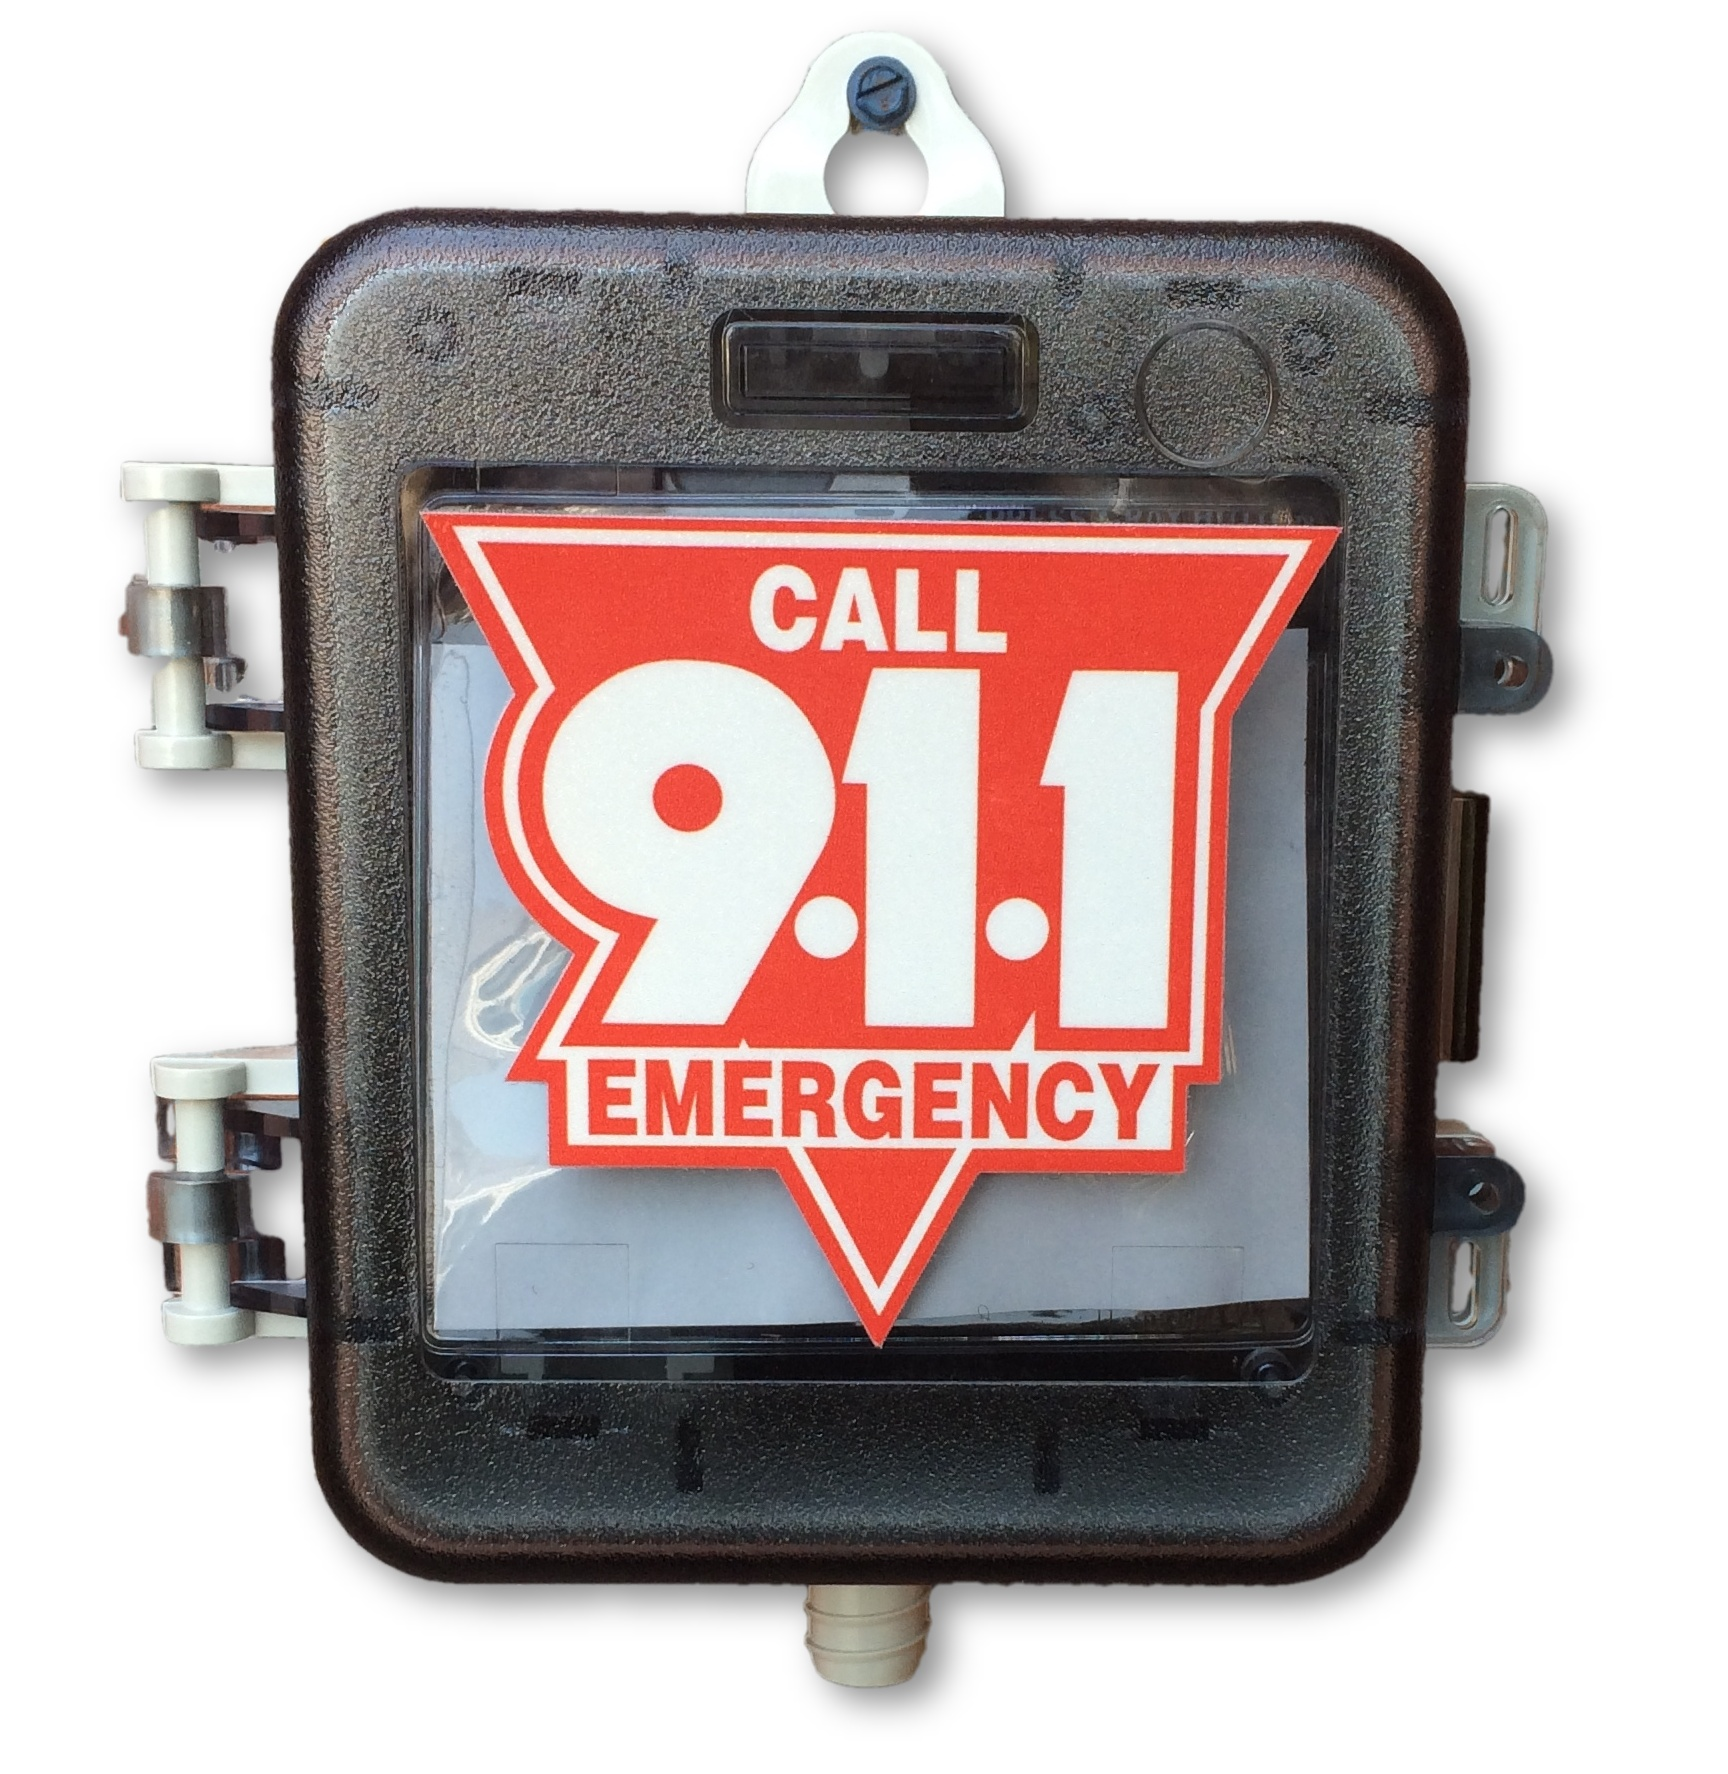 Wireless One Button 911 Emergency Phone